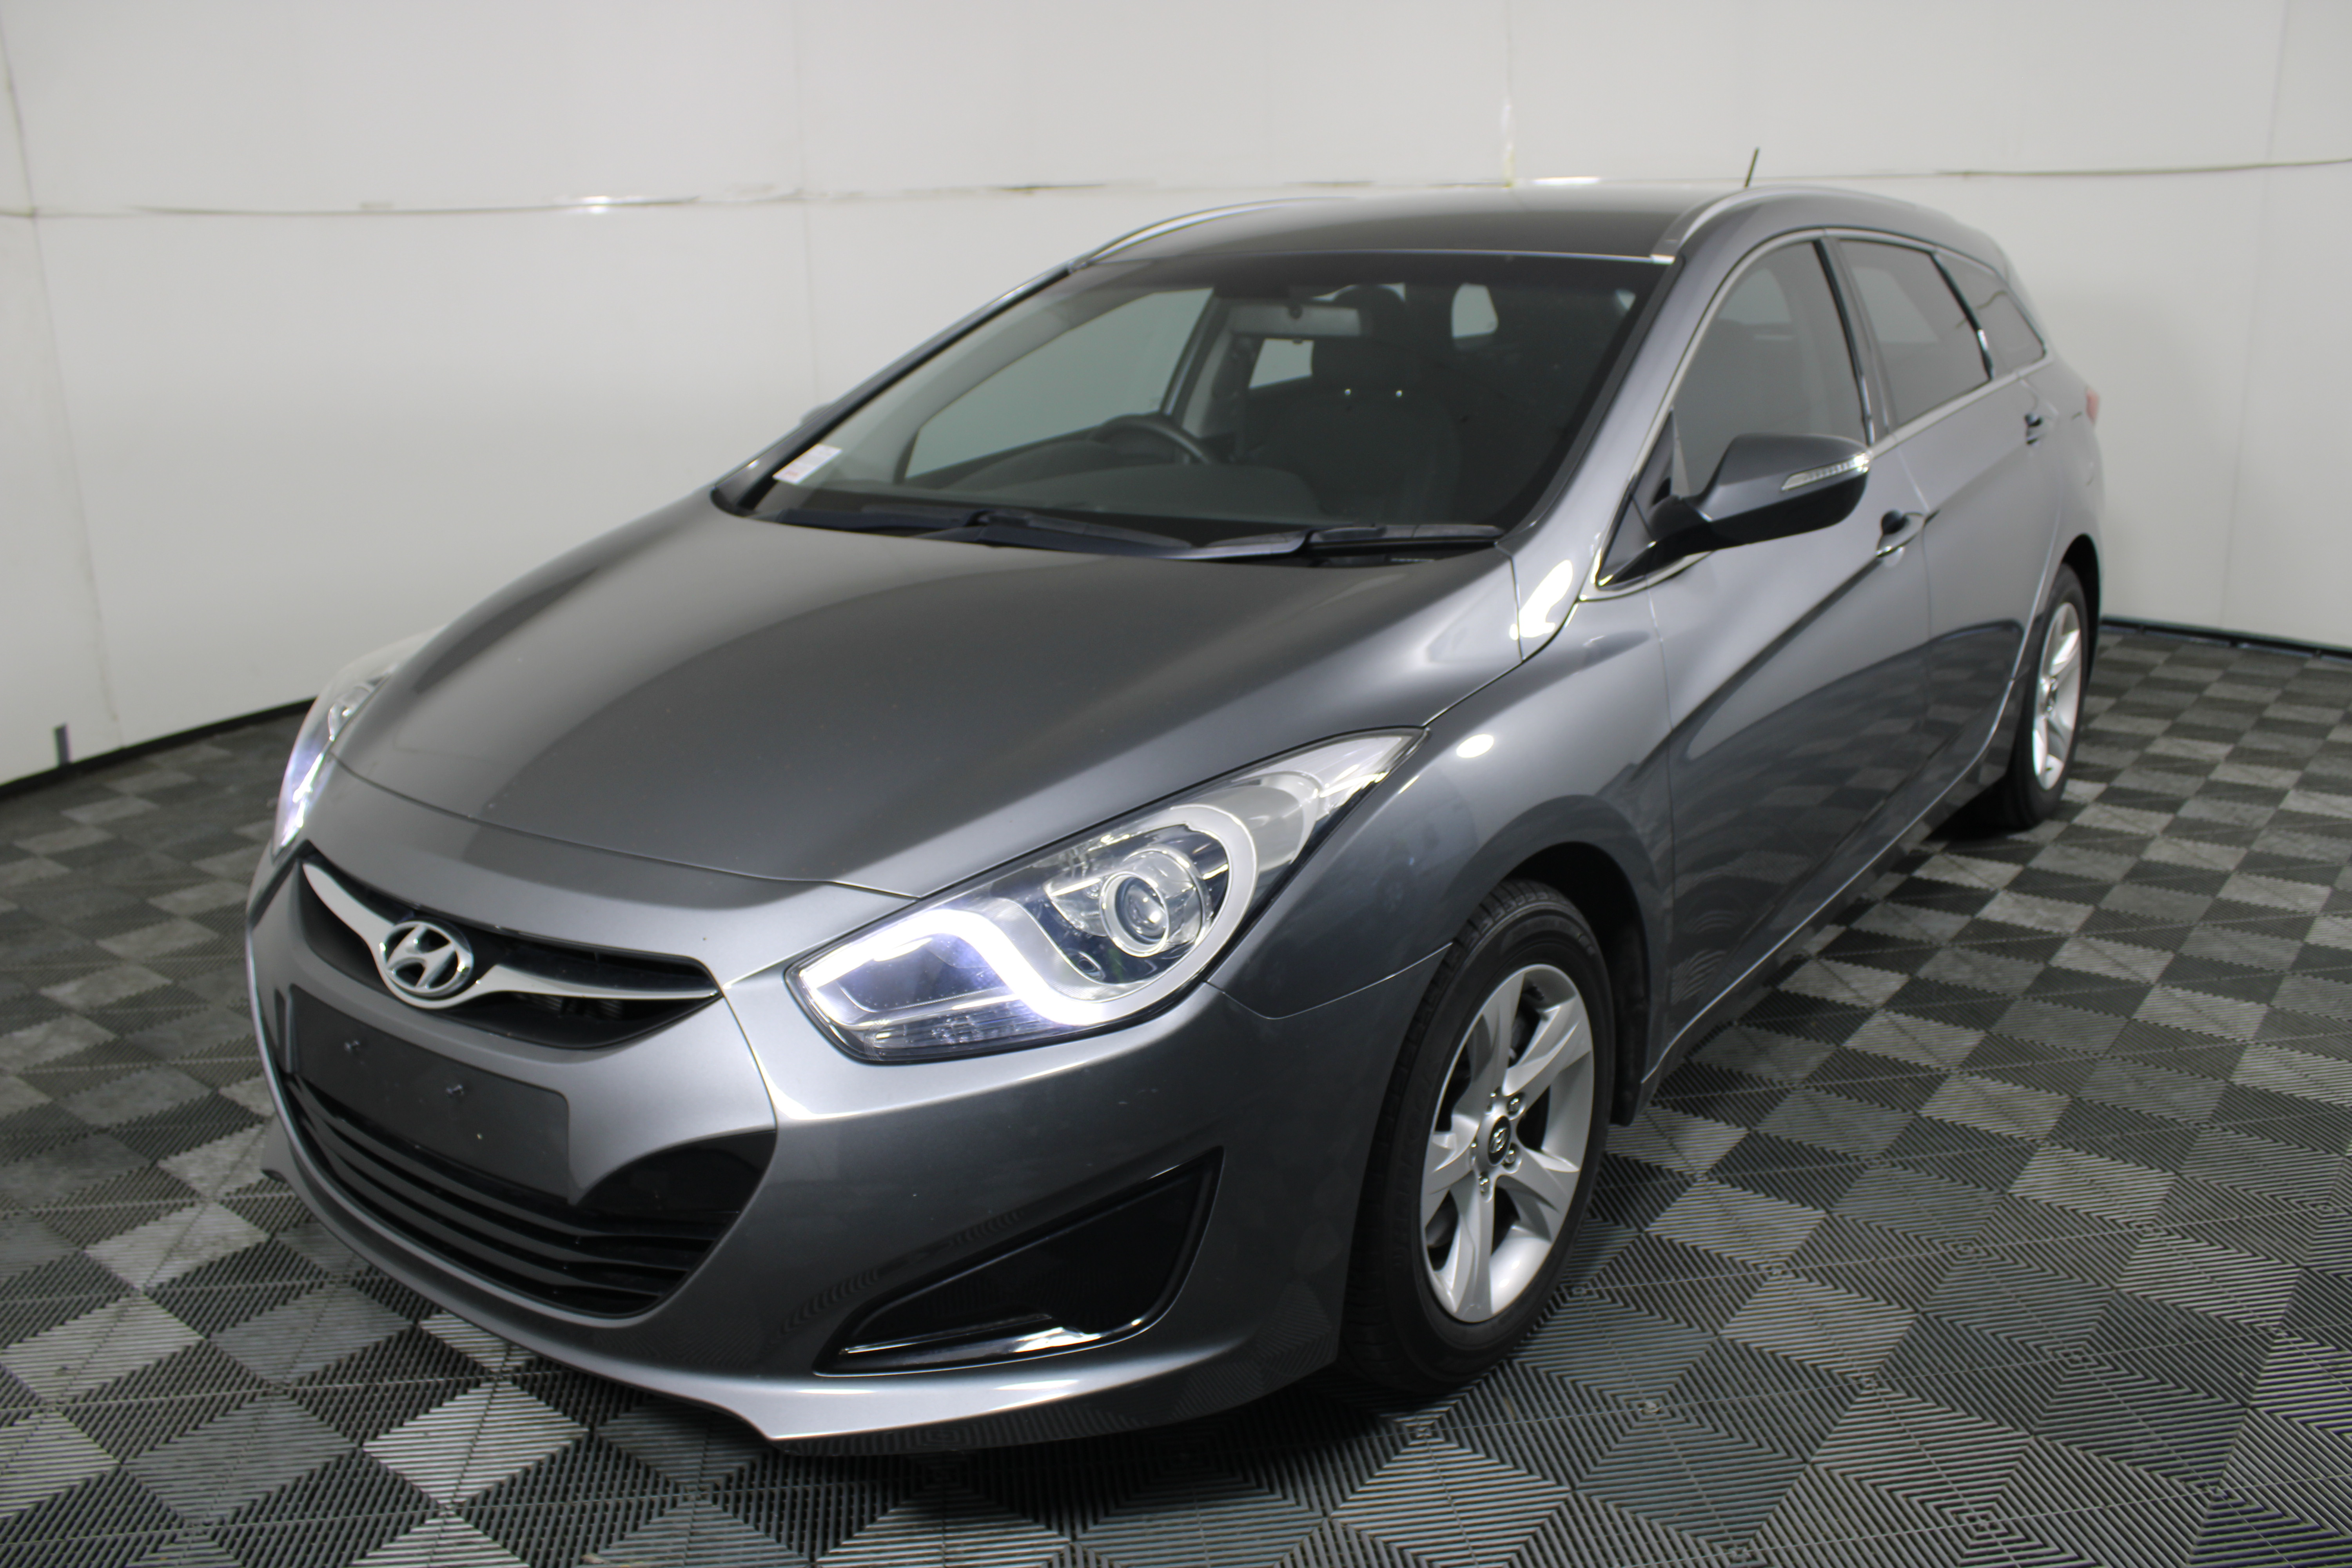 2012 Hyundai i40 Active VF Turbo Diesel Automatic Wagon 97,351km